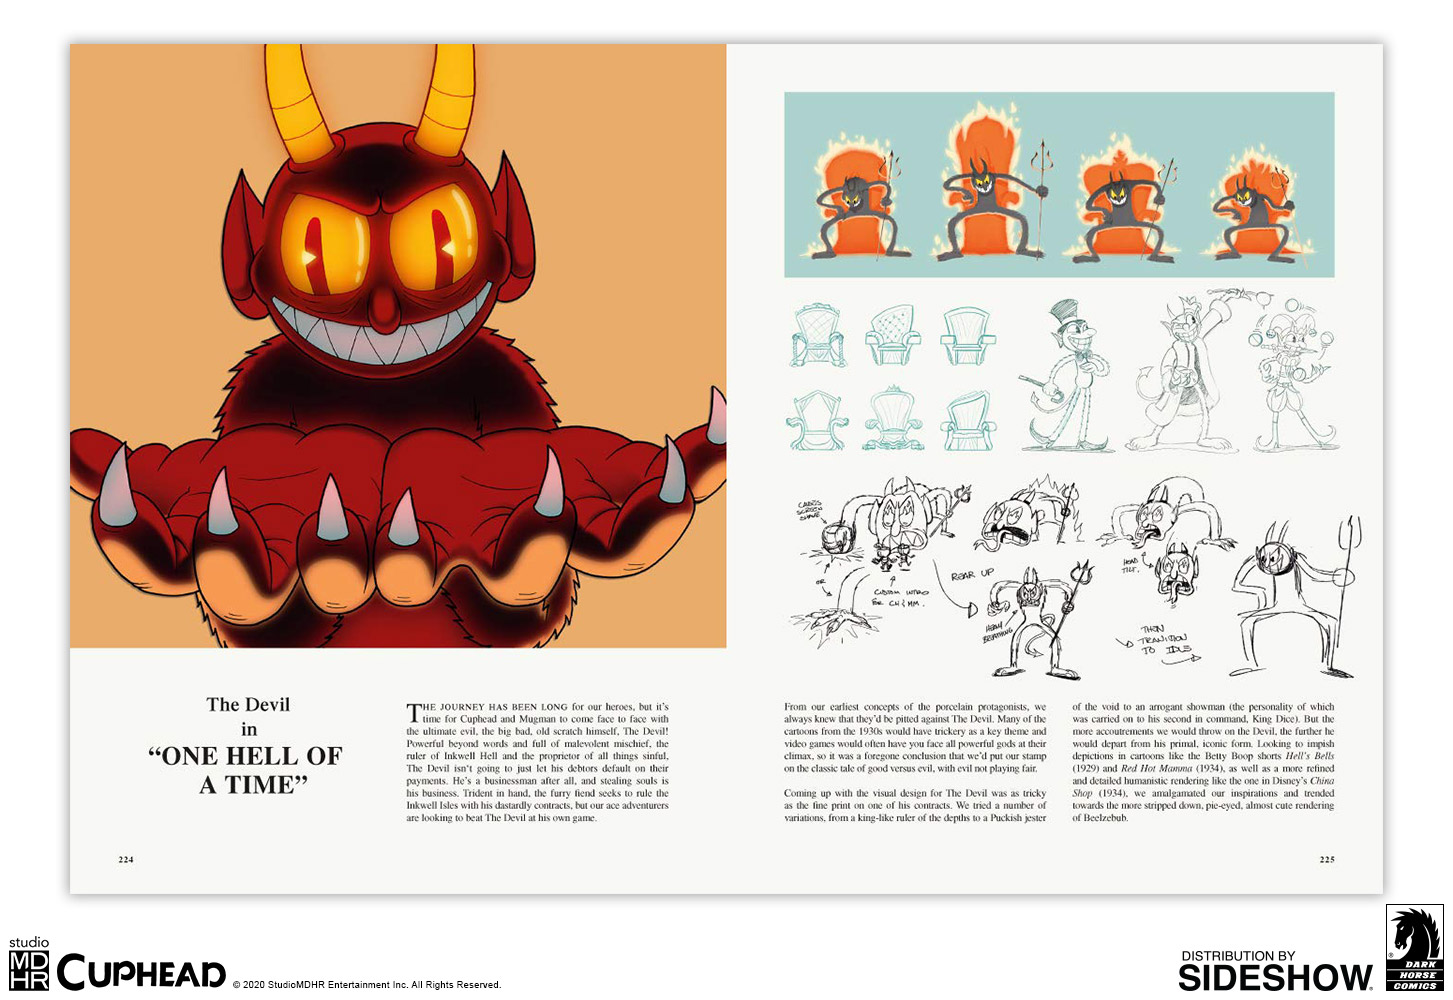 The Art of Cuphead Limited Edition Hardcover | Sideshow